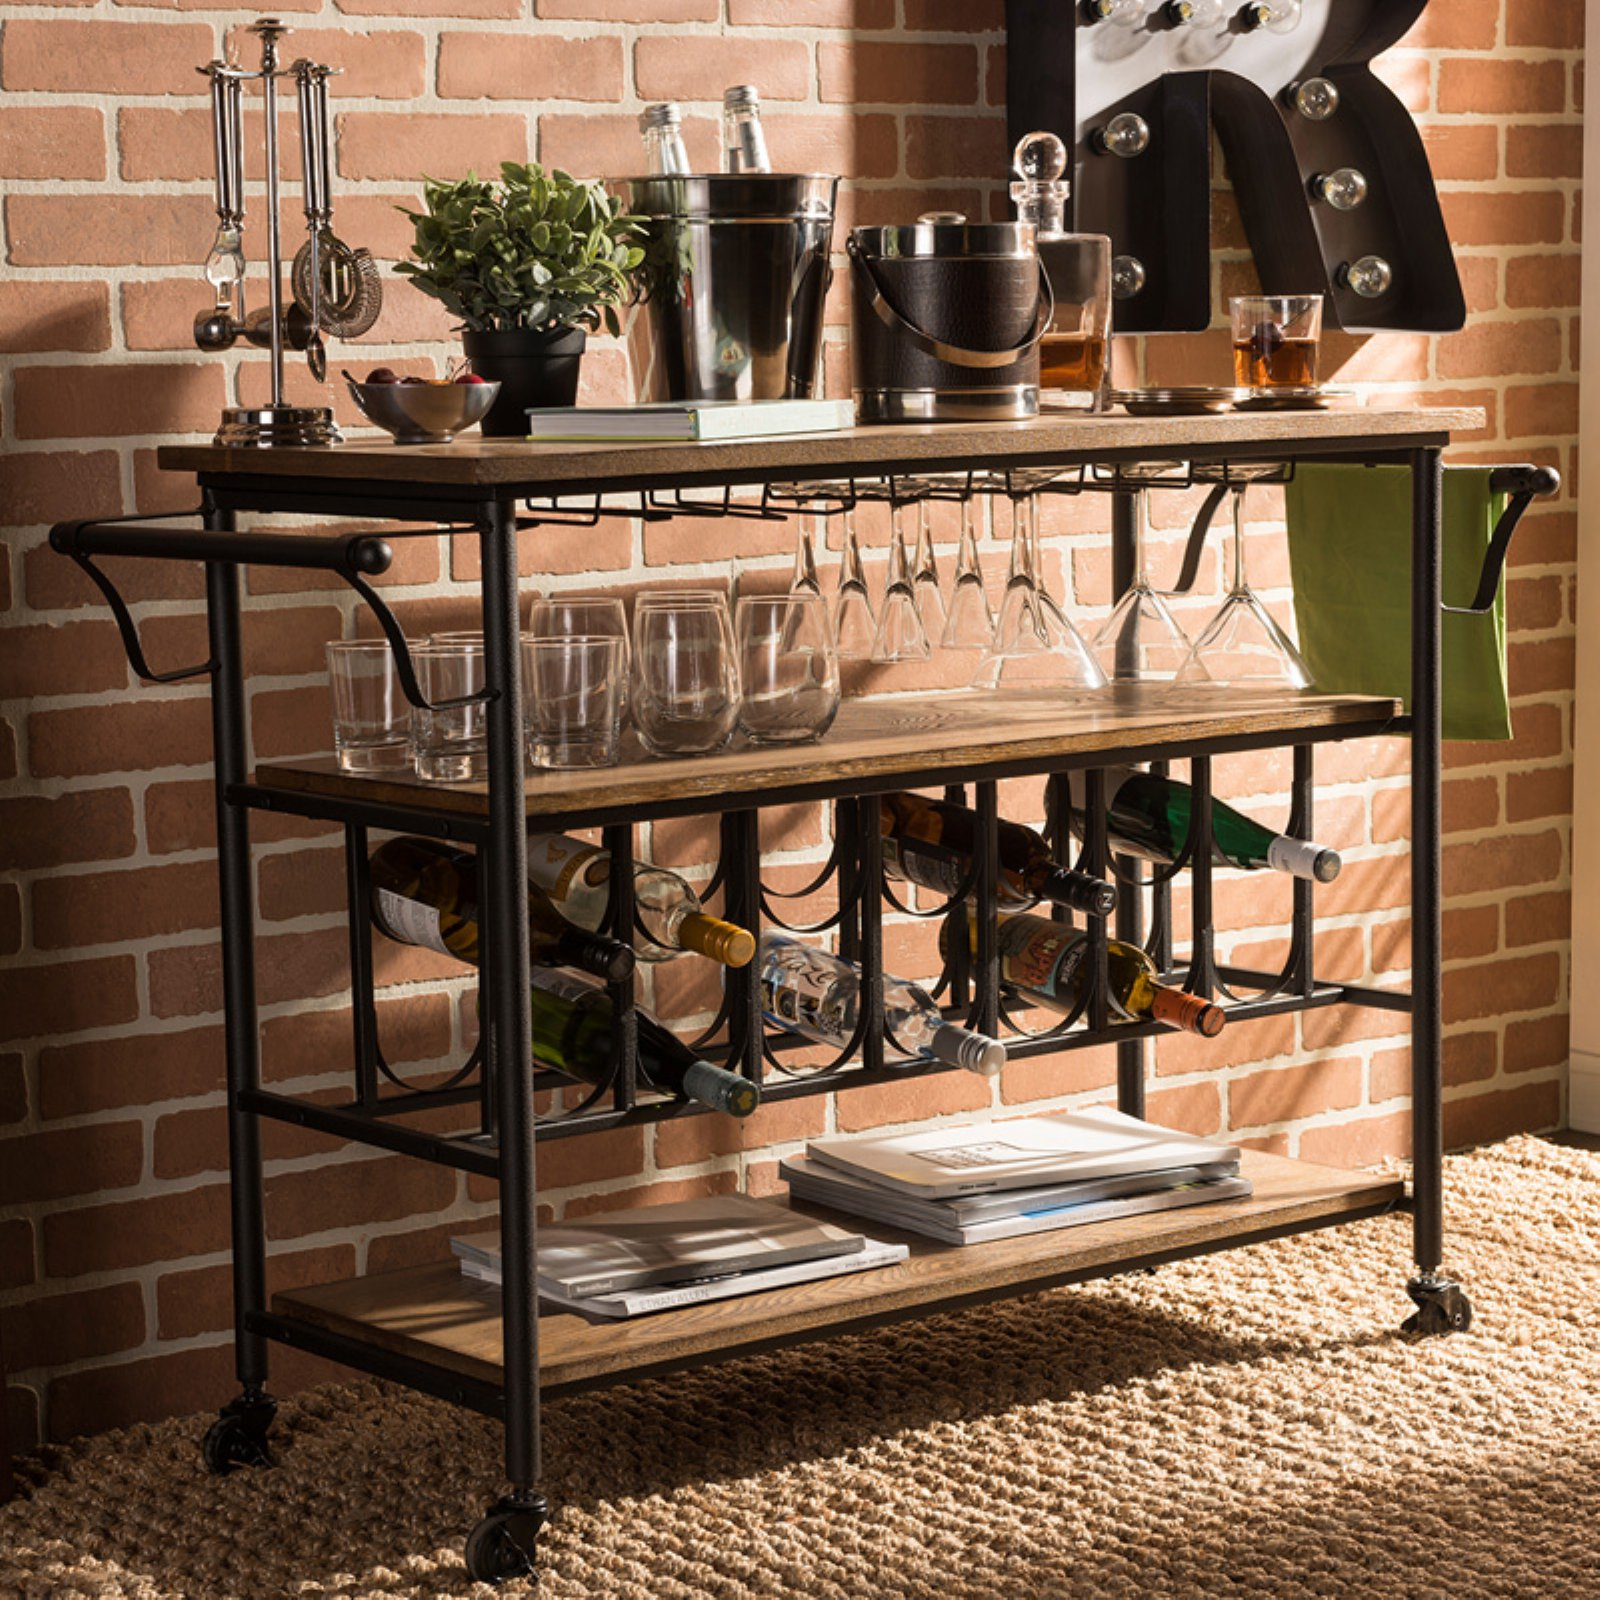 Baxton Studio Bradford Rustic Industrial Kitchen Serving Cart by Wholesale Interiors